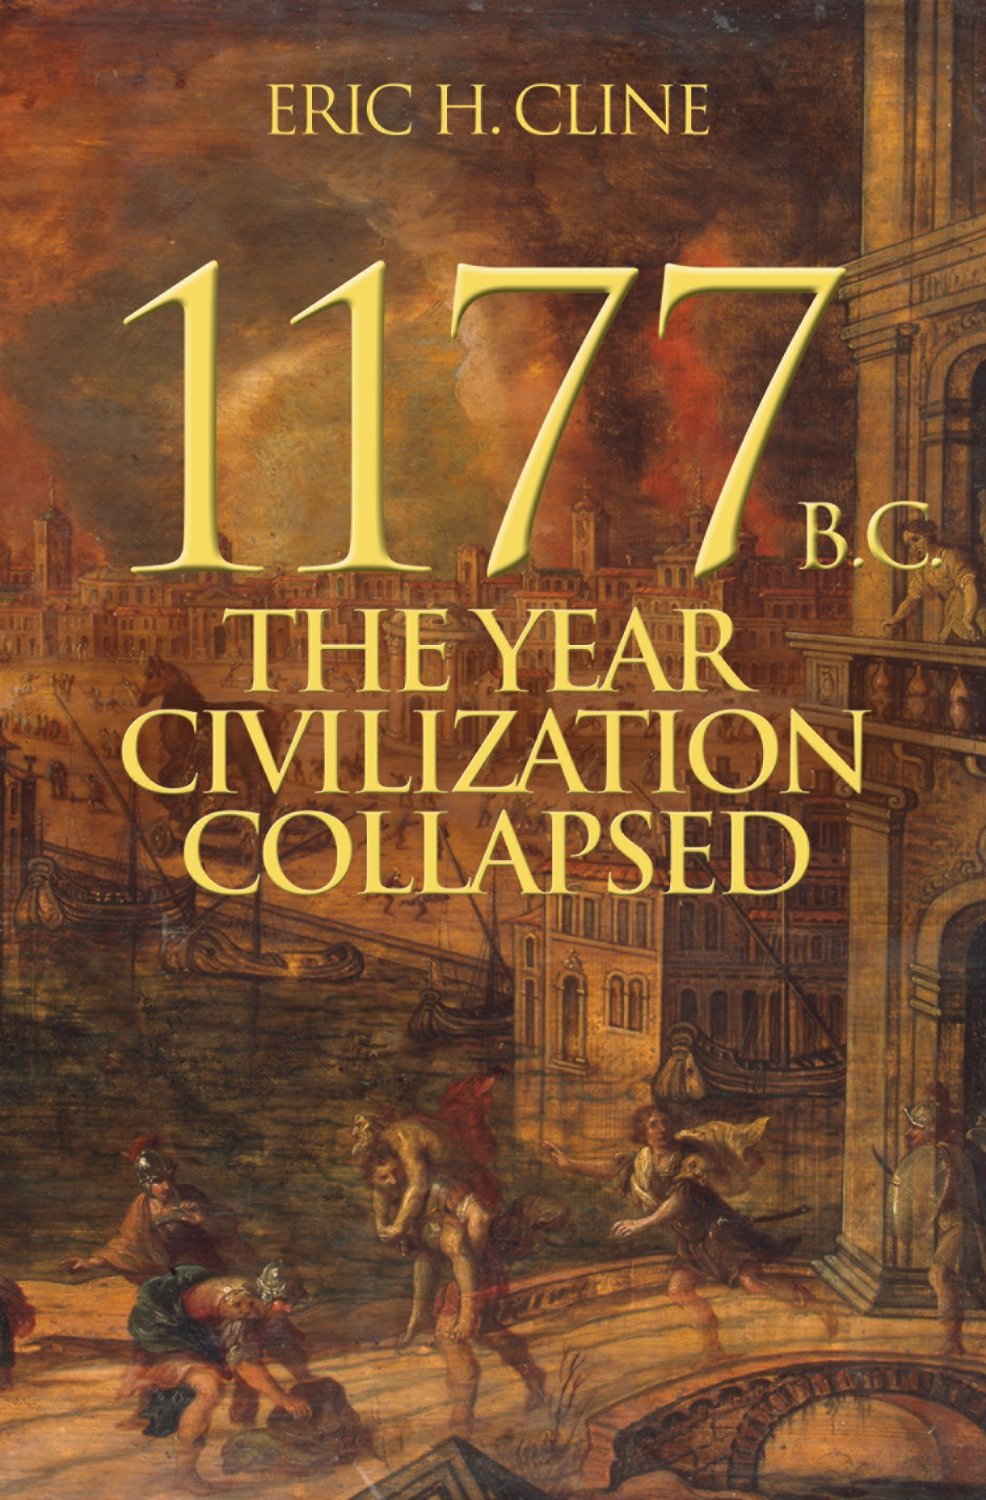 Collapse of civilizations